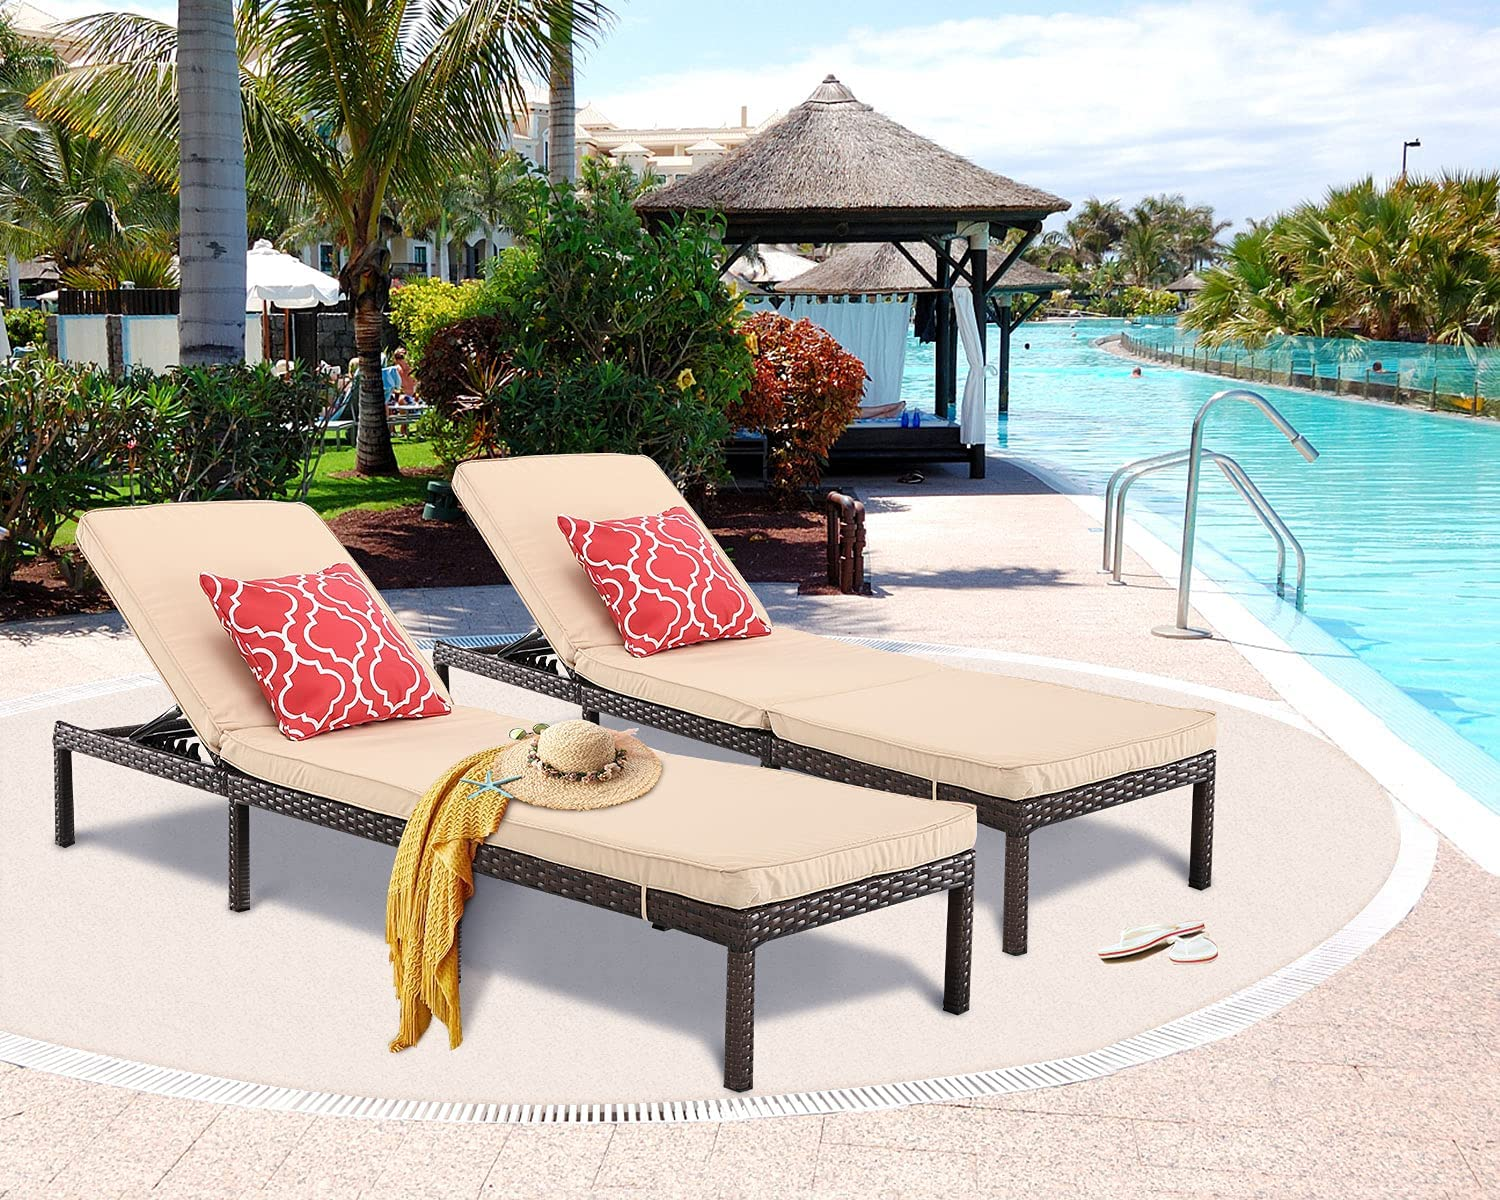 HTTH 2pcs Rattan Chaise Max 57% OFF Lounge All-Weather Outdoor Chairs Patio Sale Special Price